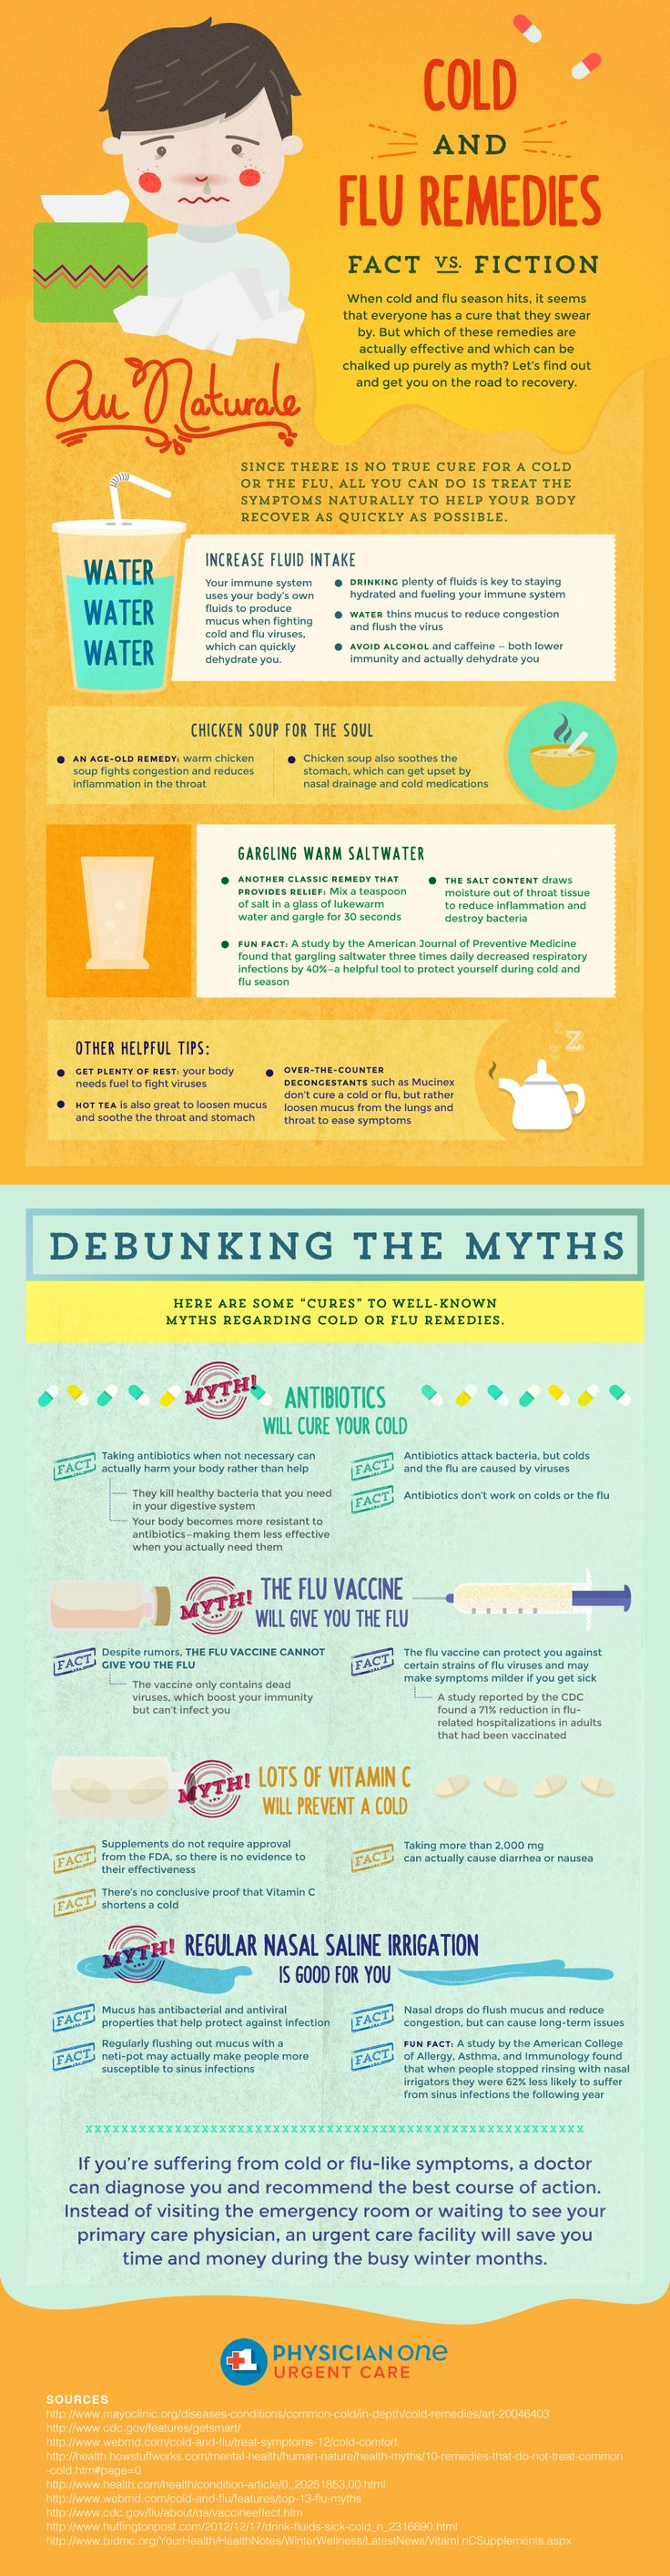 Cold and Flu Remedies: Fact vs Fiction